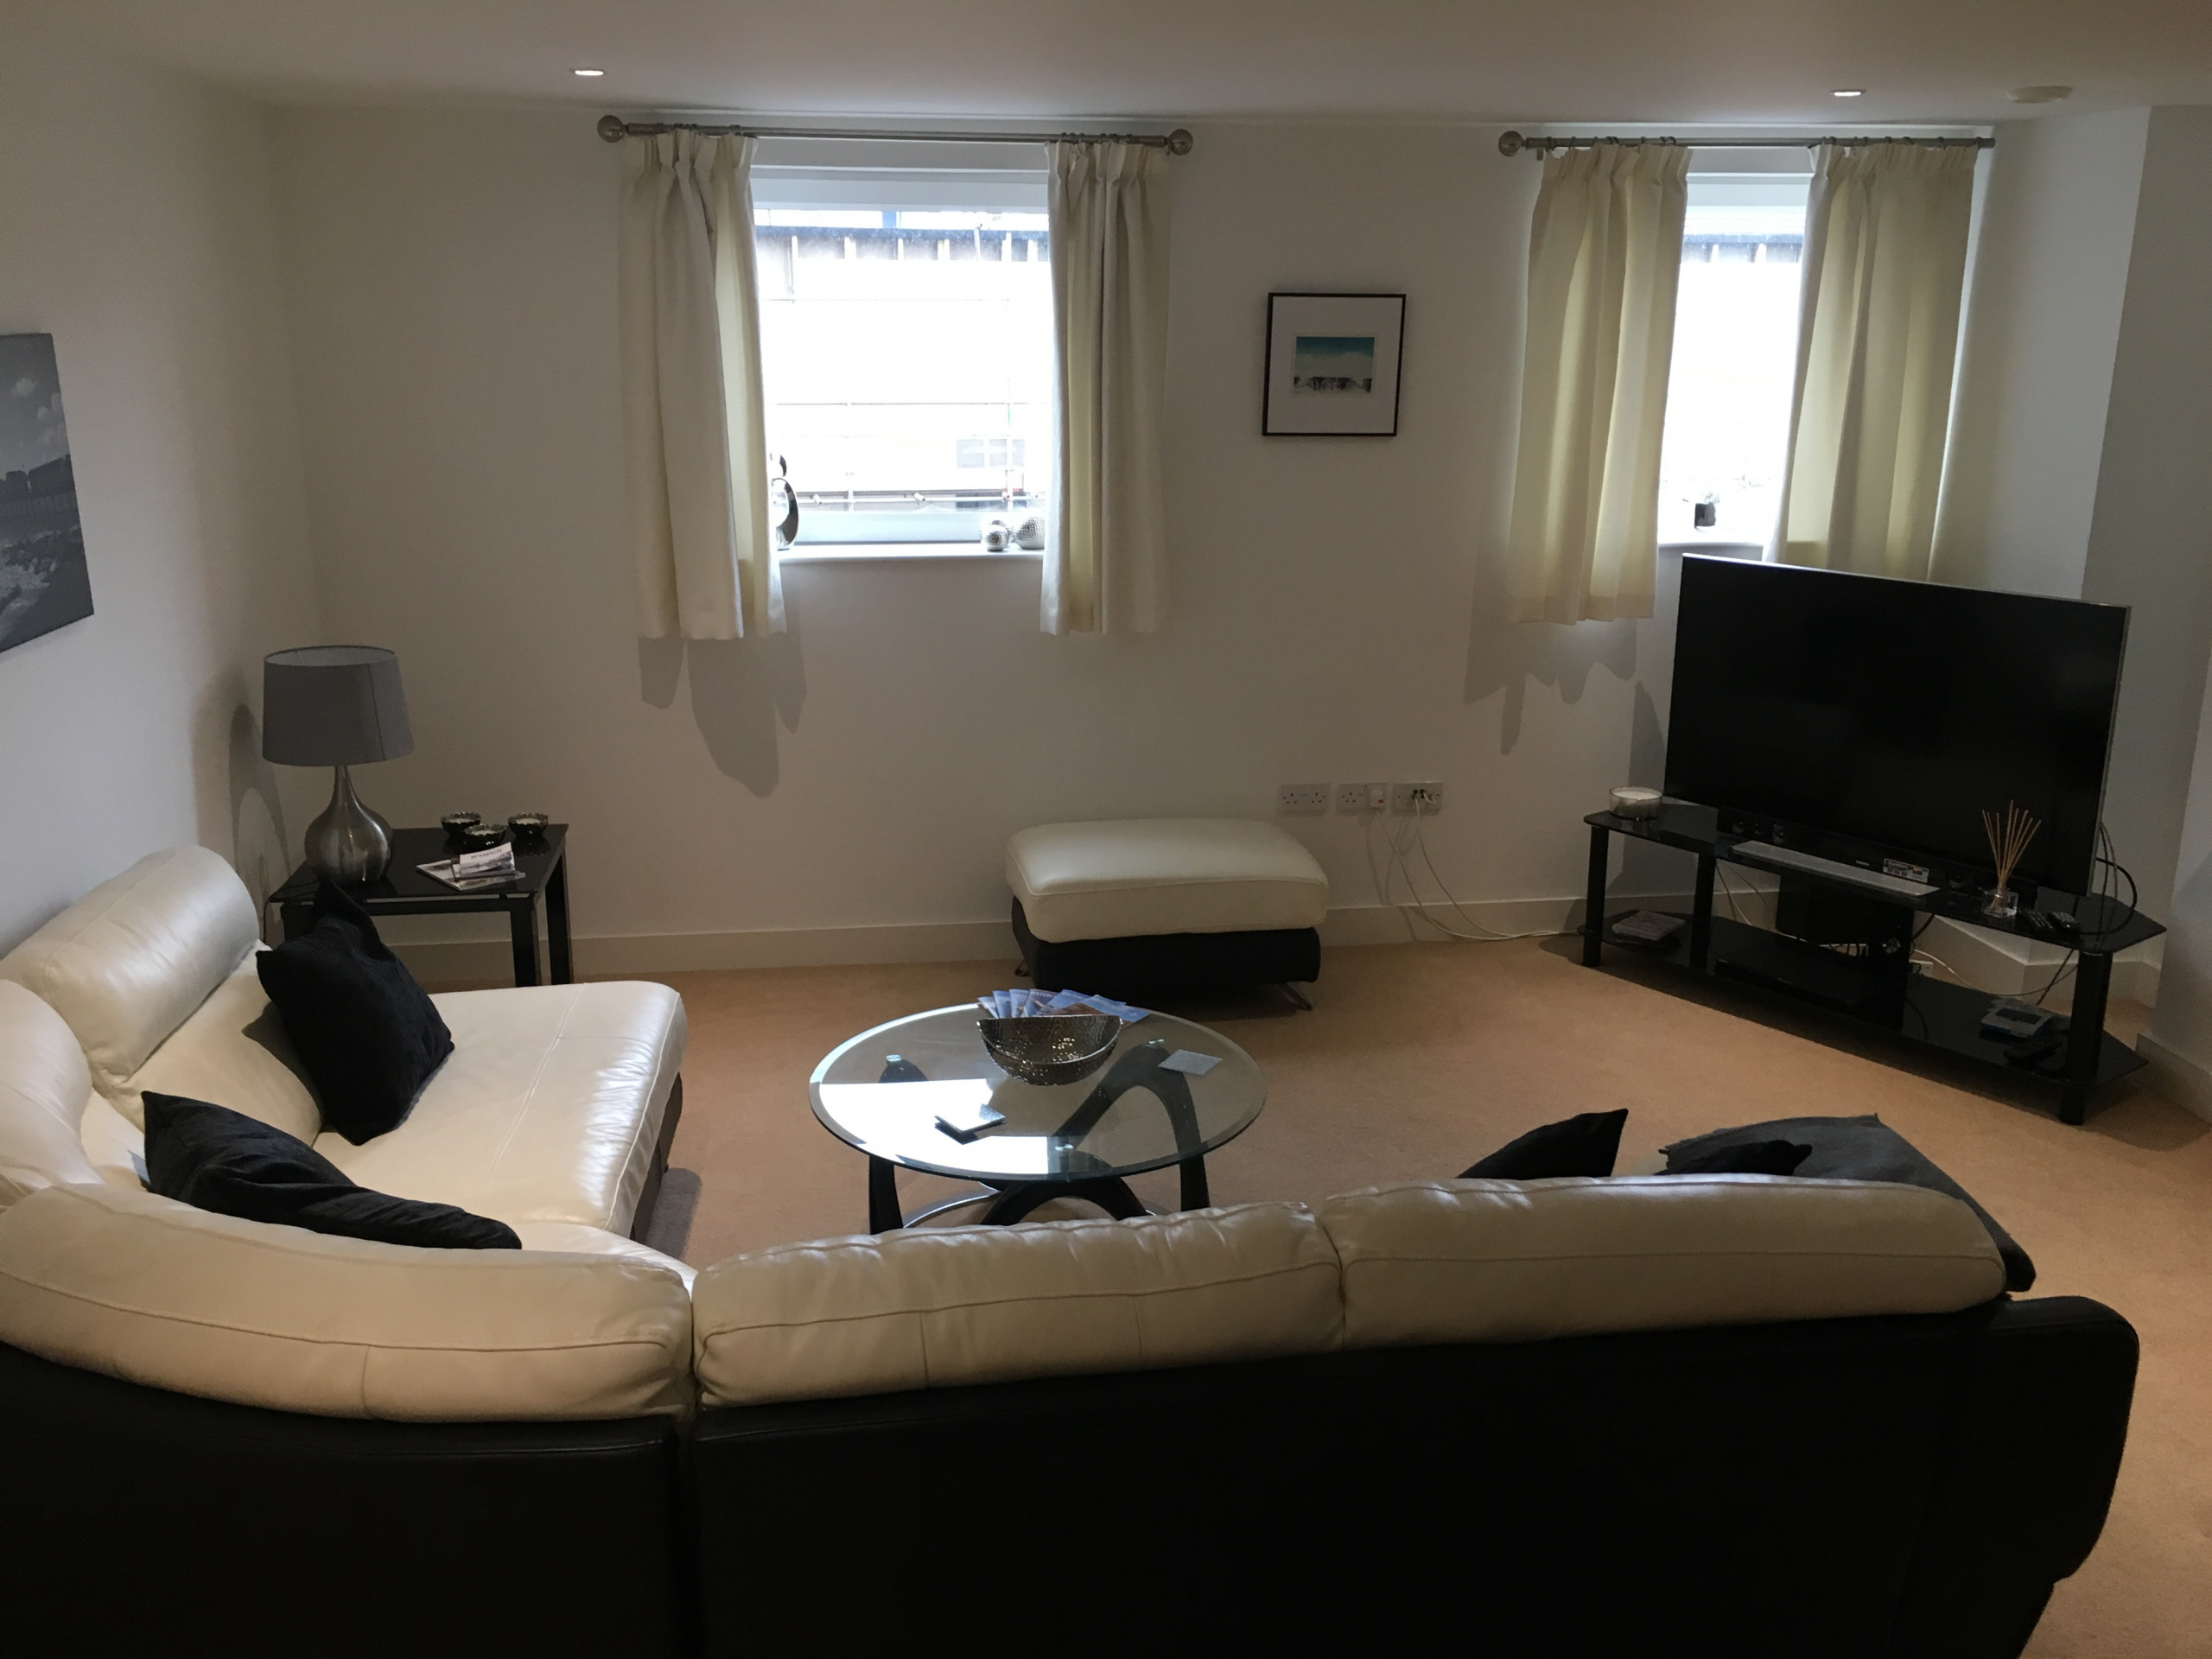 1 Bed, Waterfront Area, Parking, (1st Flr) 2